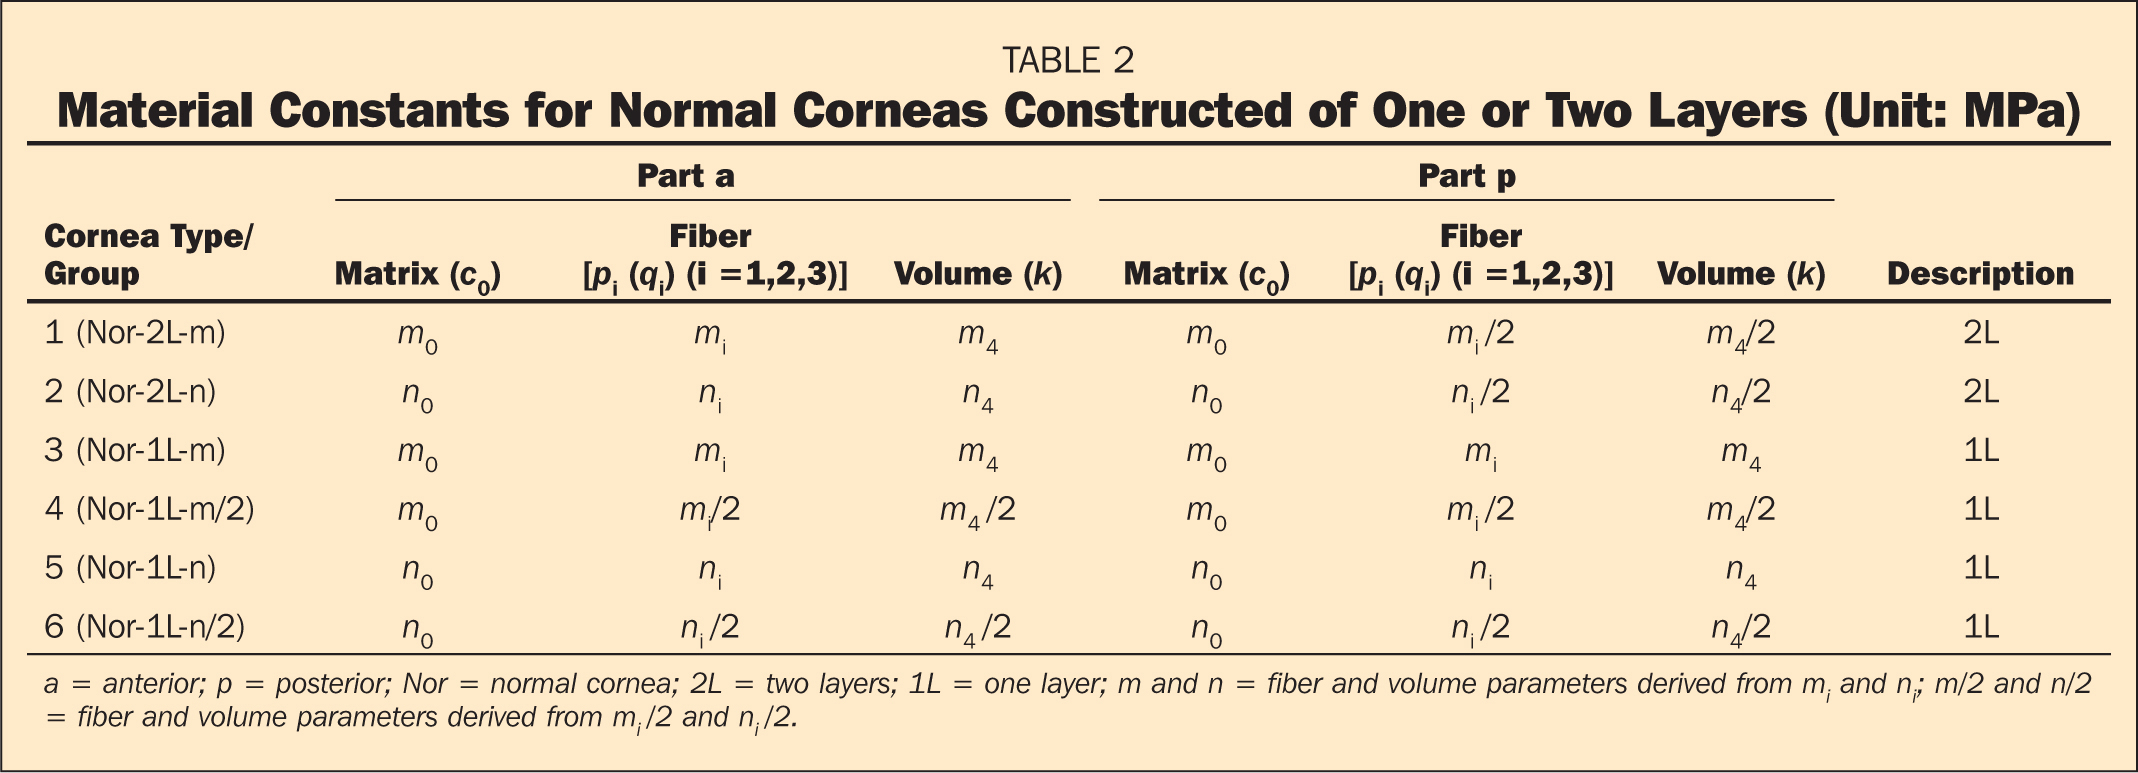 Material Constants for Normal Corneas Constructed of One or Two Layers (Unit: MPa)